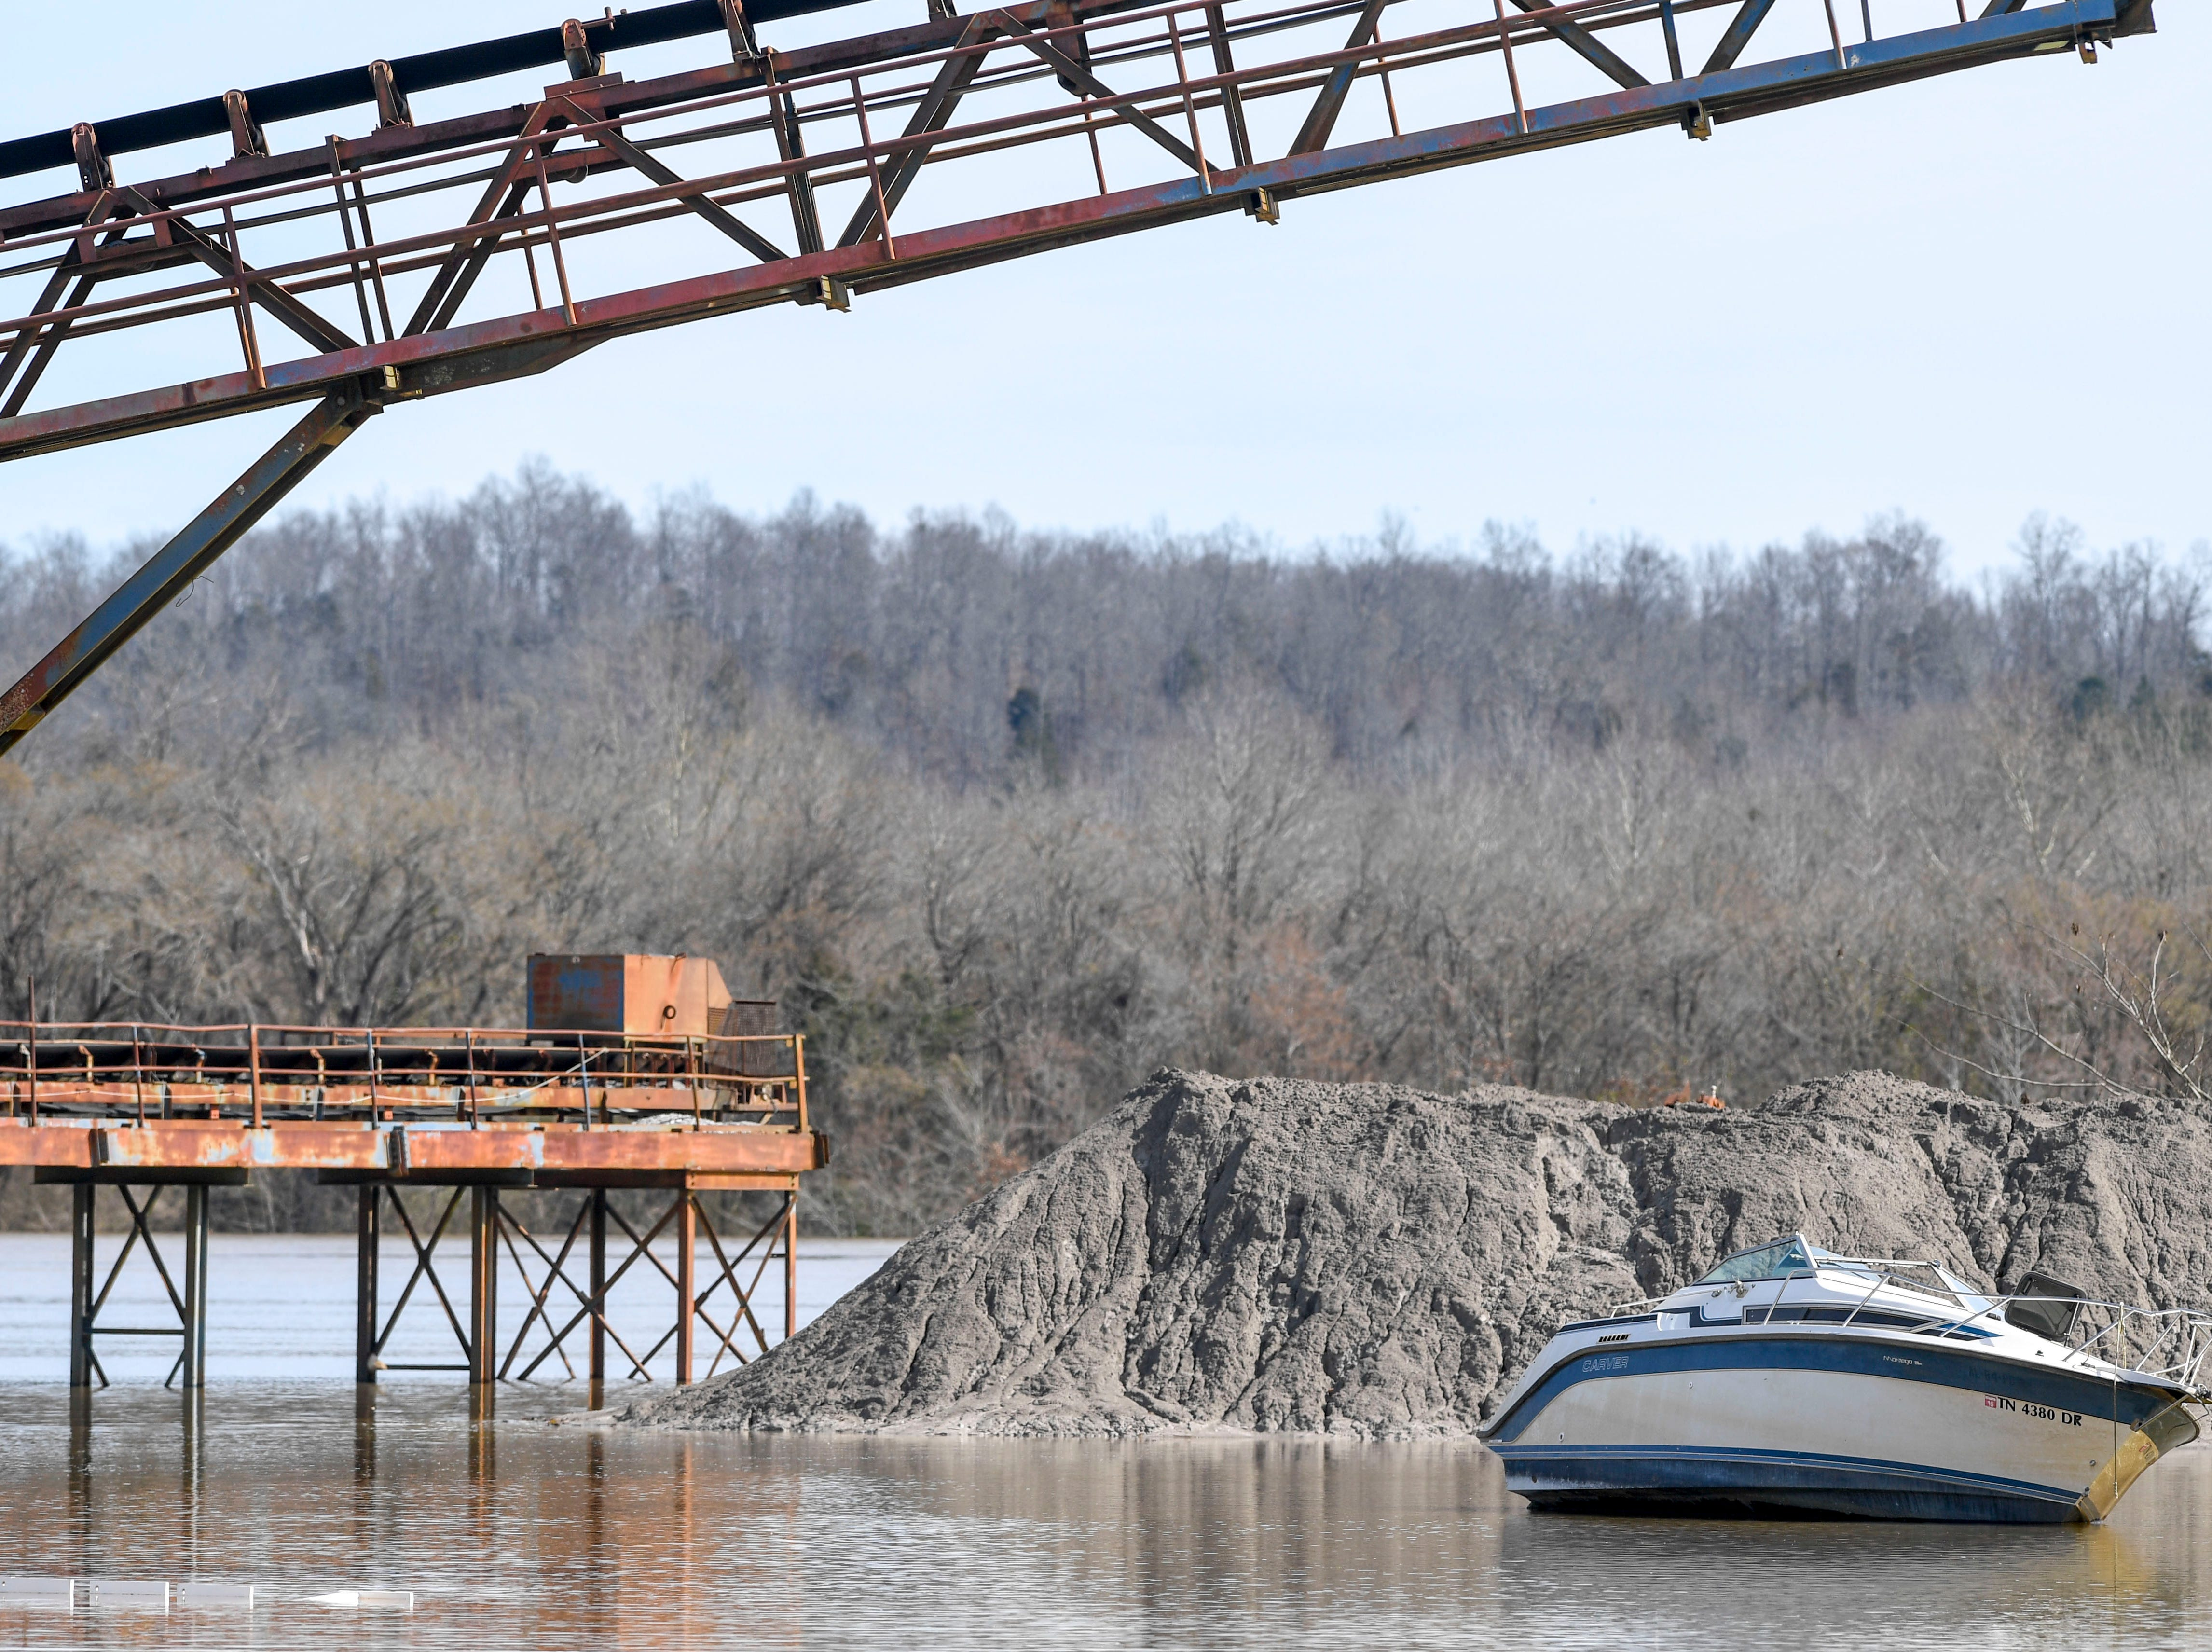 A boat having previously been beached on land in an old work yard touches water for the first time as floodwaters rise up from the Tennessee River at Hwy 100, in Decaturville, Tenn., on Monday, Feb. 25, 2019.